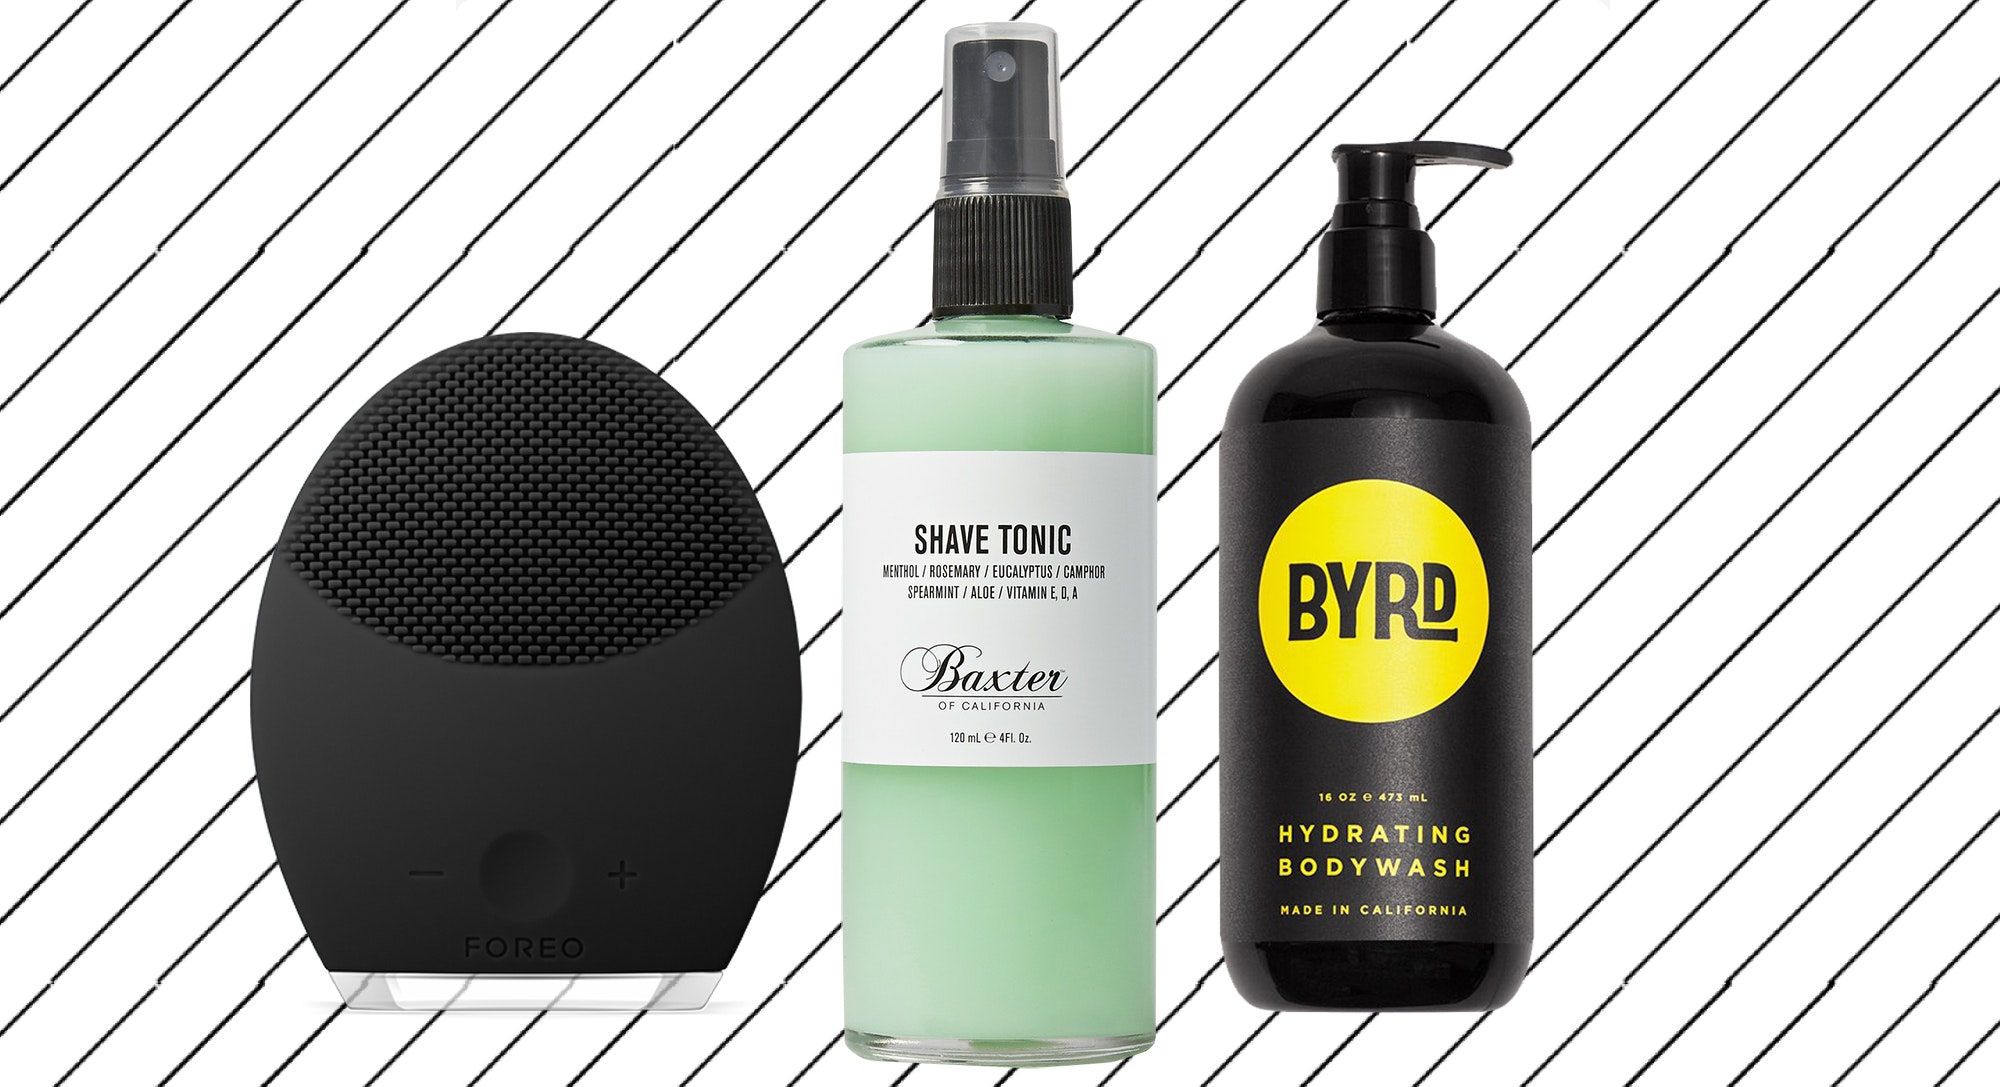 The 8 Best Men's Grooming Products You Can Get on Amazon